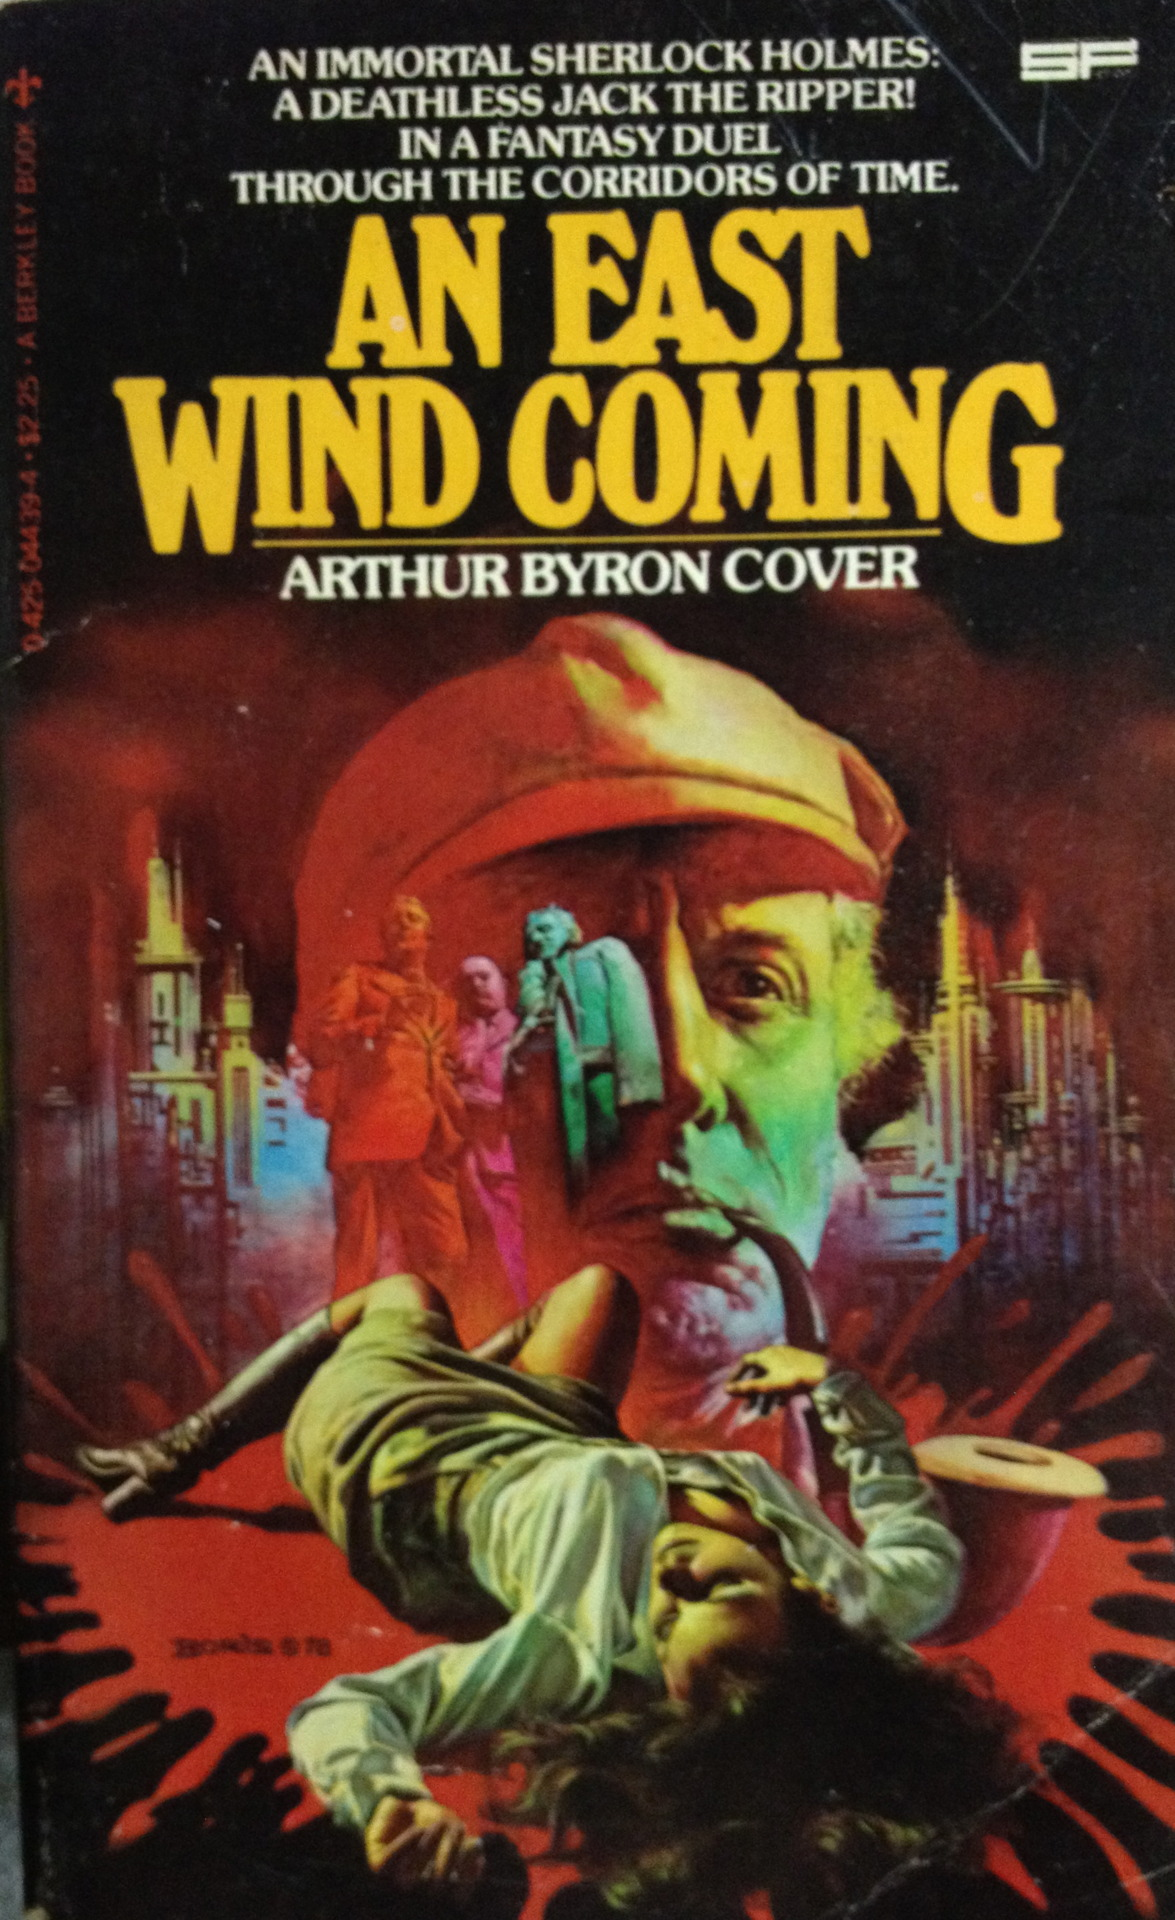 "Arthur Byron Cover wrote some cracked science fiction novellas in the 1970s, as part of the ""Weird Heroes"" and Harlan Ellison's ""Dangerous Visions"" series. I used to own a copy of Cover's ""The Platypus of Doom and Other Nihilists,"" a mass market paperback that is out of print and as of February 2012 sells for $65 to $100. But this one has survived on my shelf since high school: ""An East Wind Coming"" is somewhat more easy to get and here is the premise, Sherlock Holmes vs. Jack the Ripper: It was two million years in the future and they were immortal — Holmes, Watson, all the Great Ones. With nothing to master but limitless Time. But that was before the killing began, bfore the world's greatest sleuth discovered that history's most heinous criminal was also ""alive"" and steeping the East End of the Eternal City in the blood of goddesses.    [Originally posted on my discontinued This Old Book Tumblr.]"